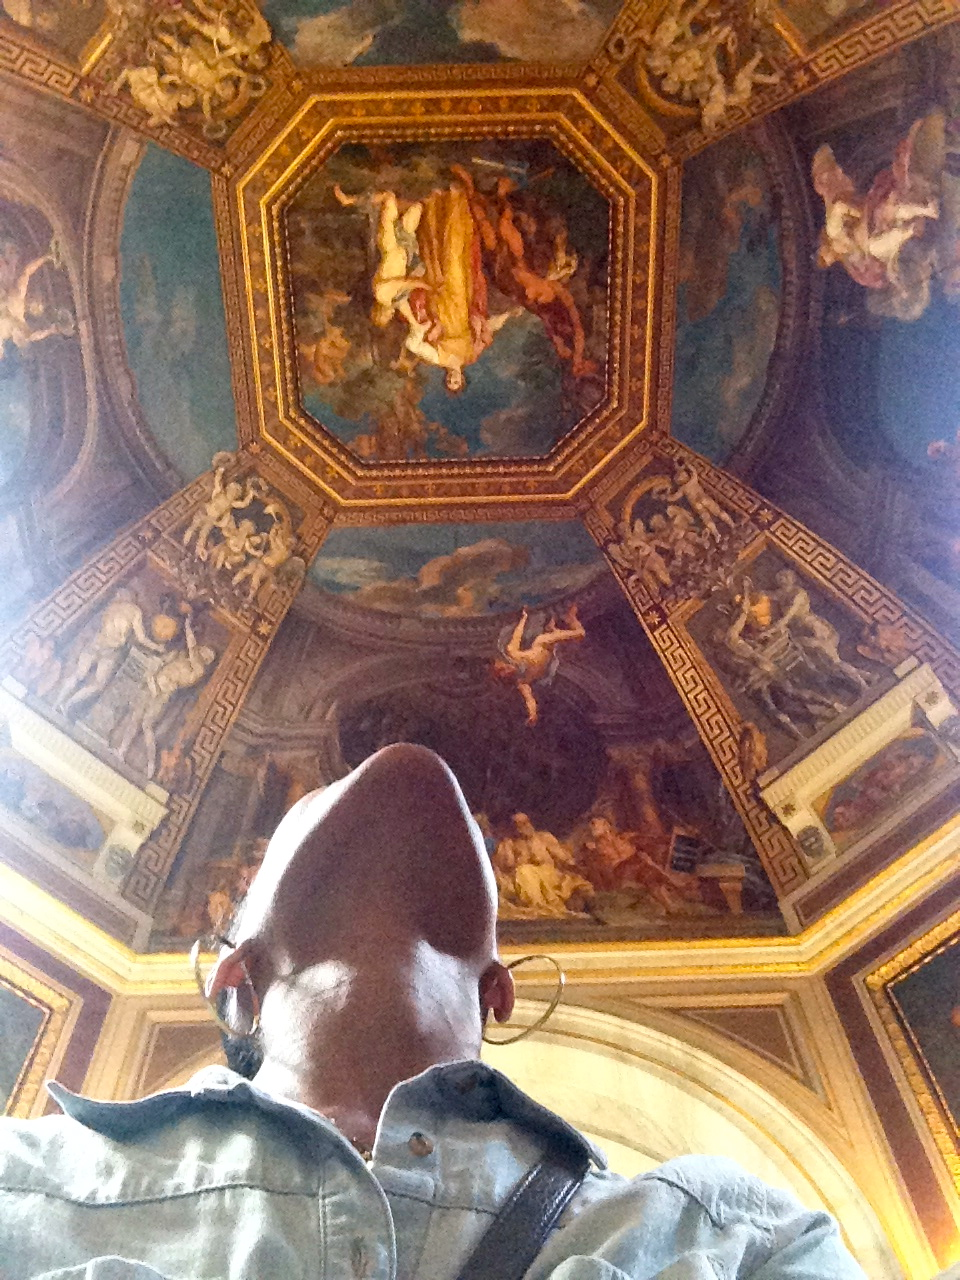 Don't forget to look up when you're in the Vatican Museum